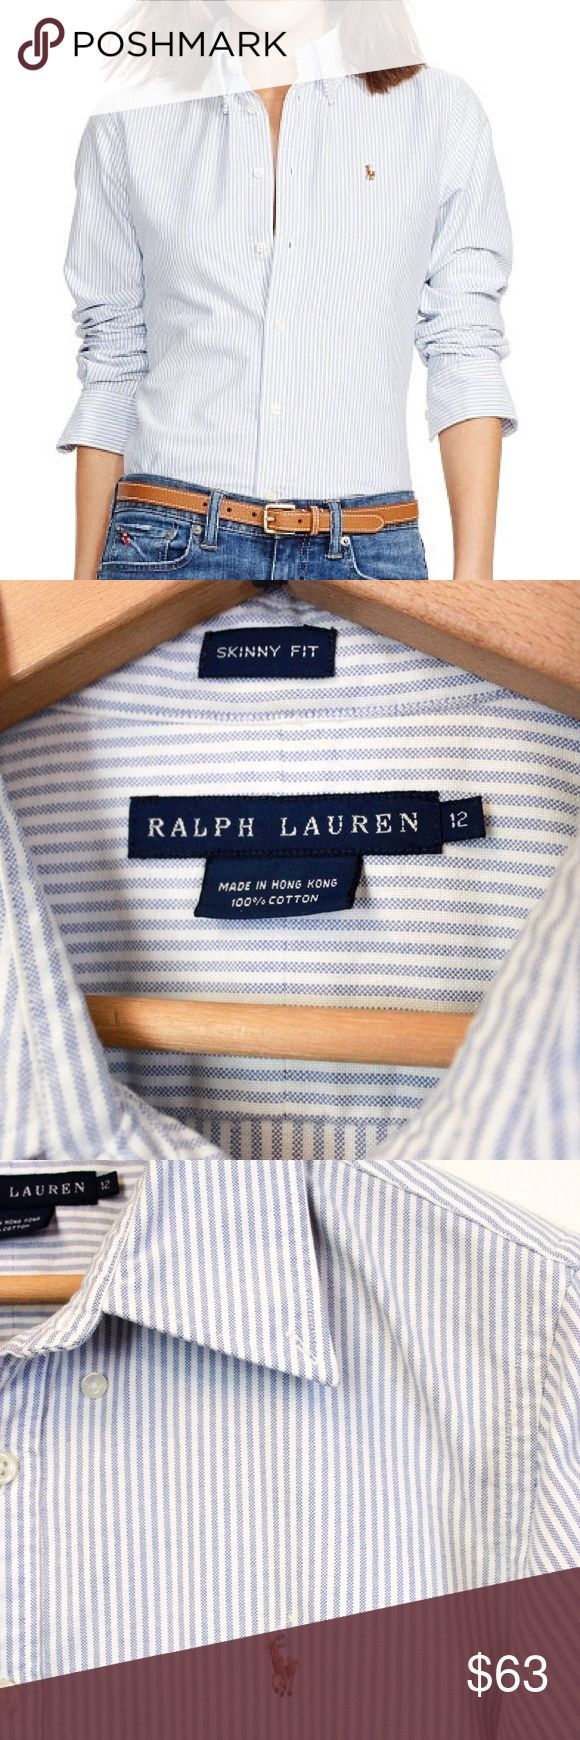 Collared Pinstripe Oxford Polo | Ralph Lauren This classic Ralph Lauren polo is lightweight and perfect for every occasion. This collared button-down is 100% cotton, slim fit, and goes with everything. Wear with skinny jeans, a pencil skirt, or layered under a sweater or blazer. The cut has narrow shoulders and a tapered waist for feminine silhouette. With long sleeves and buttoned barrel cuffs, signature embroidered pony, this a wardrobe staple! Barely worn, dry cleaned, and in perfect…